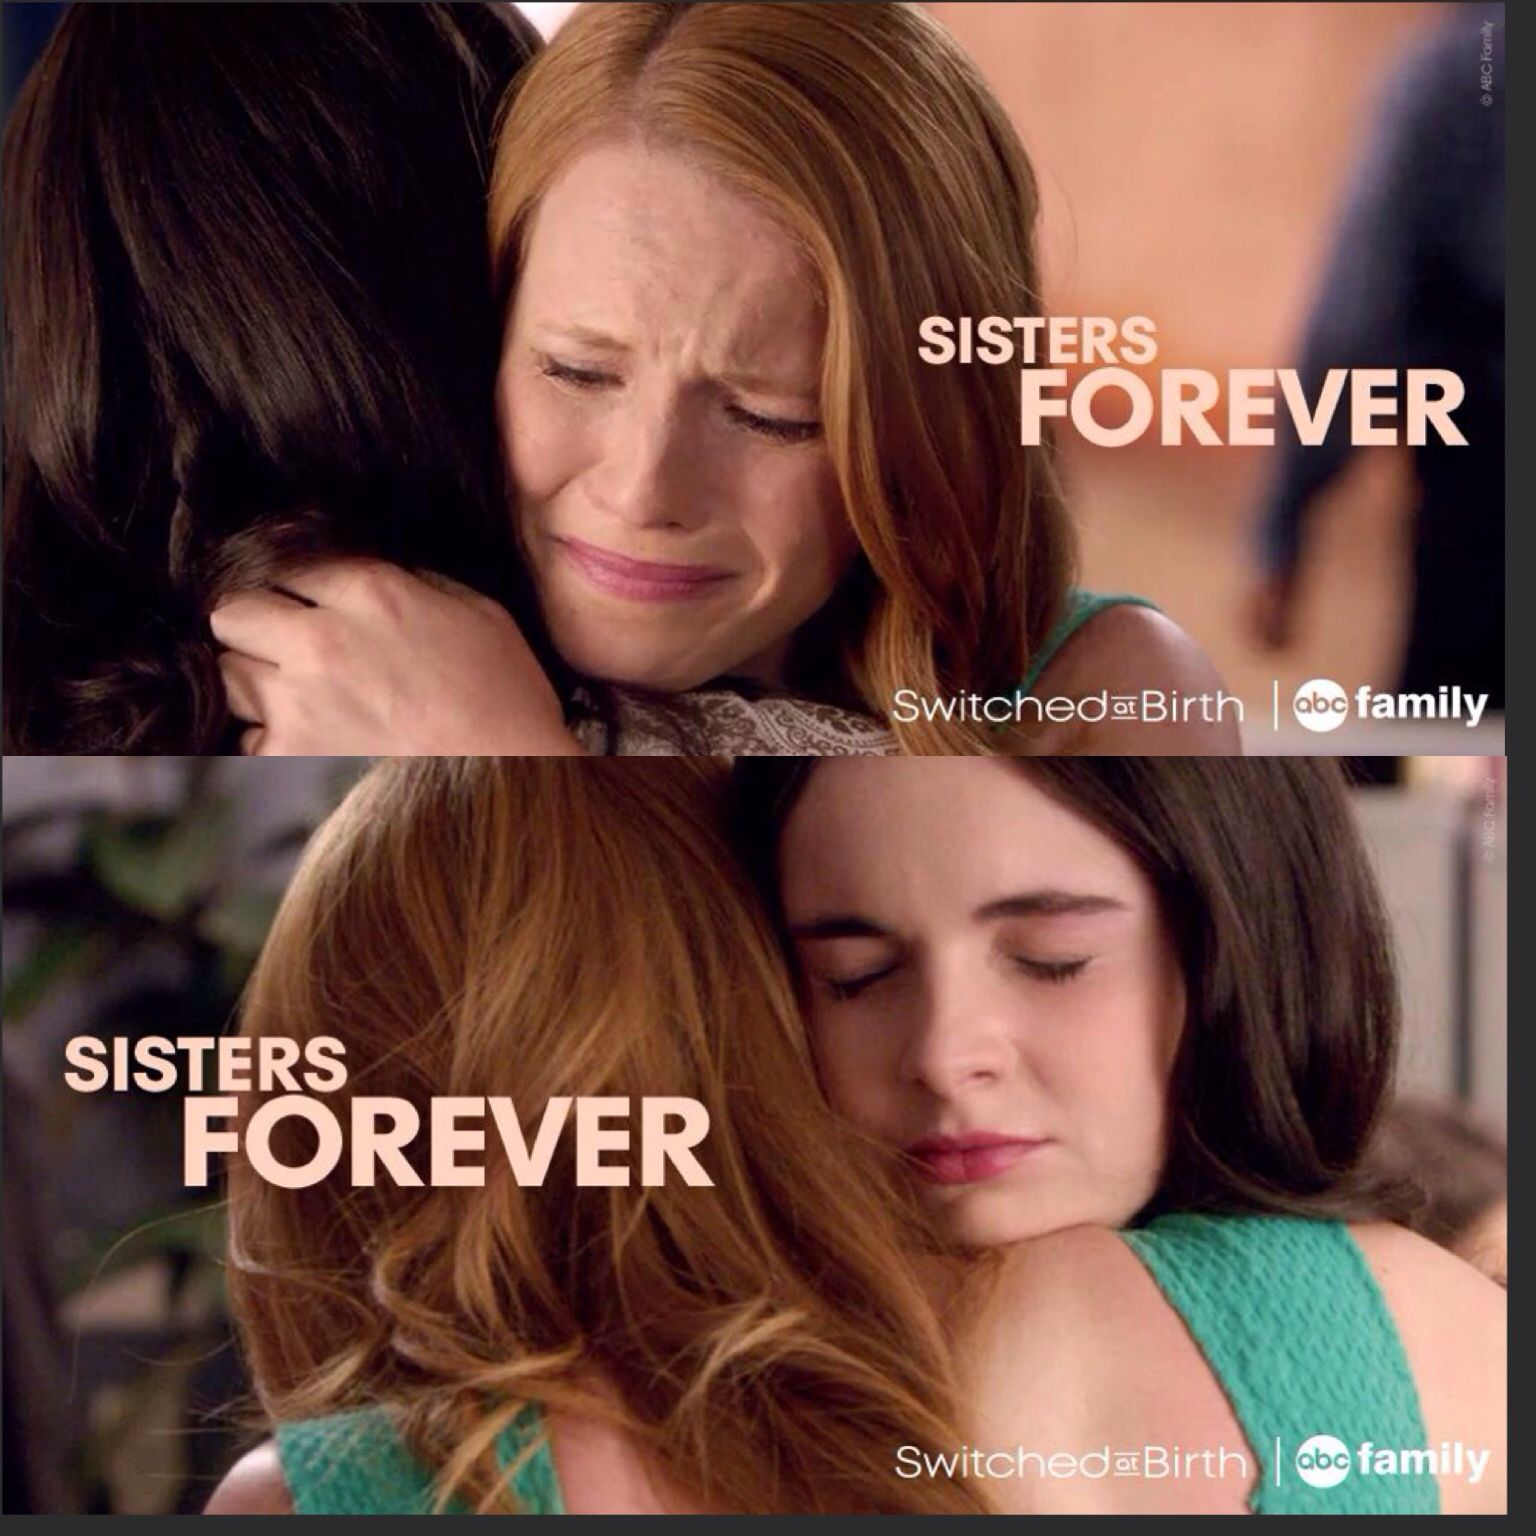 So sweet! Switched At Birth cliffhanger season finale.